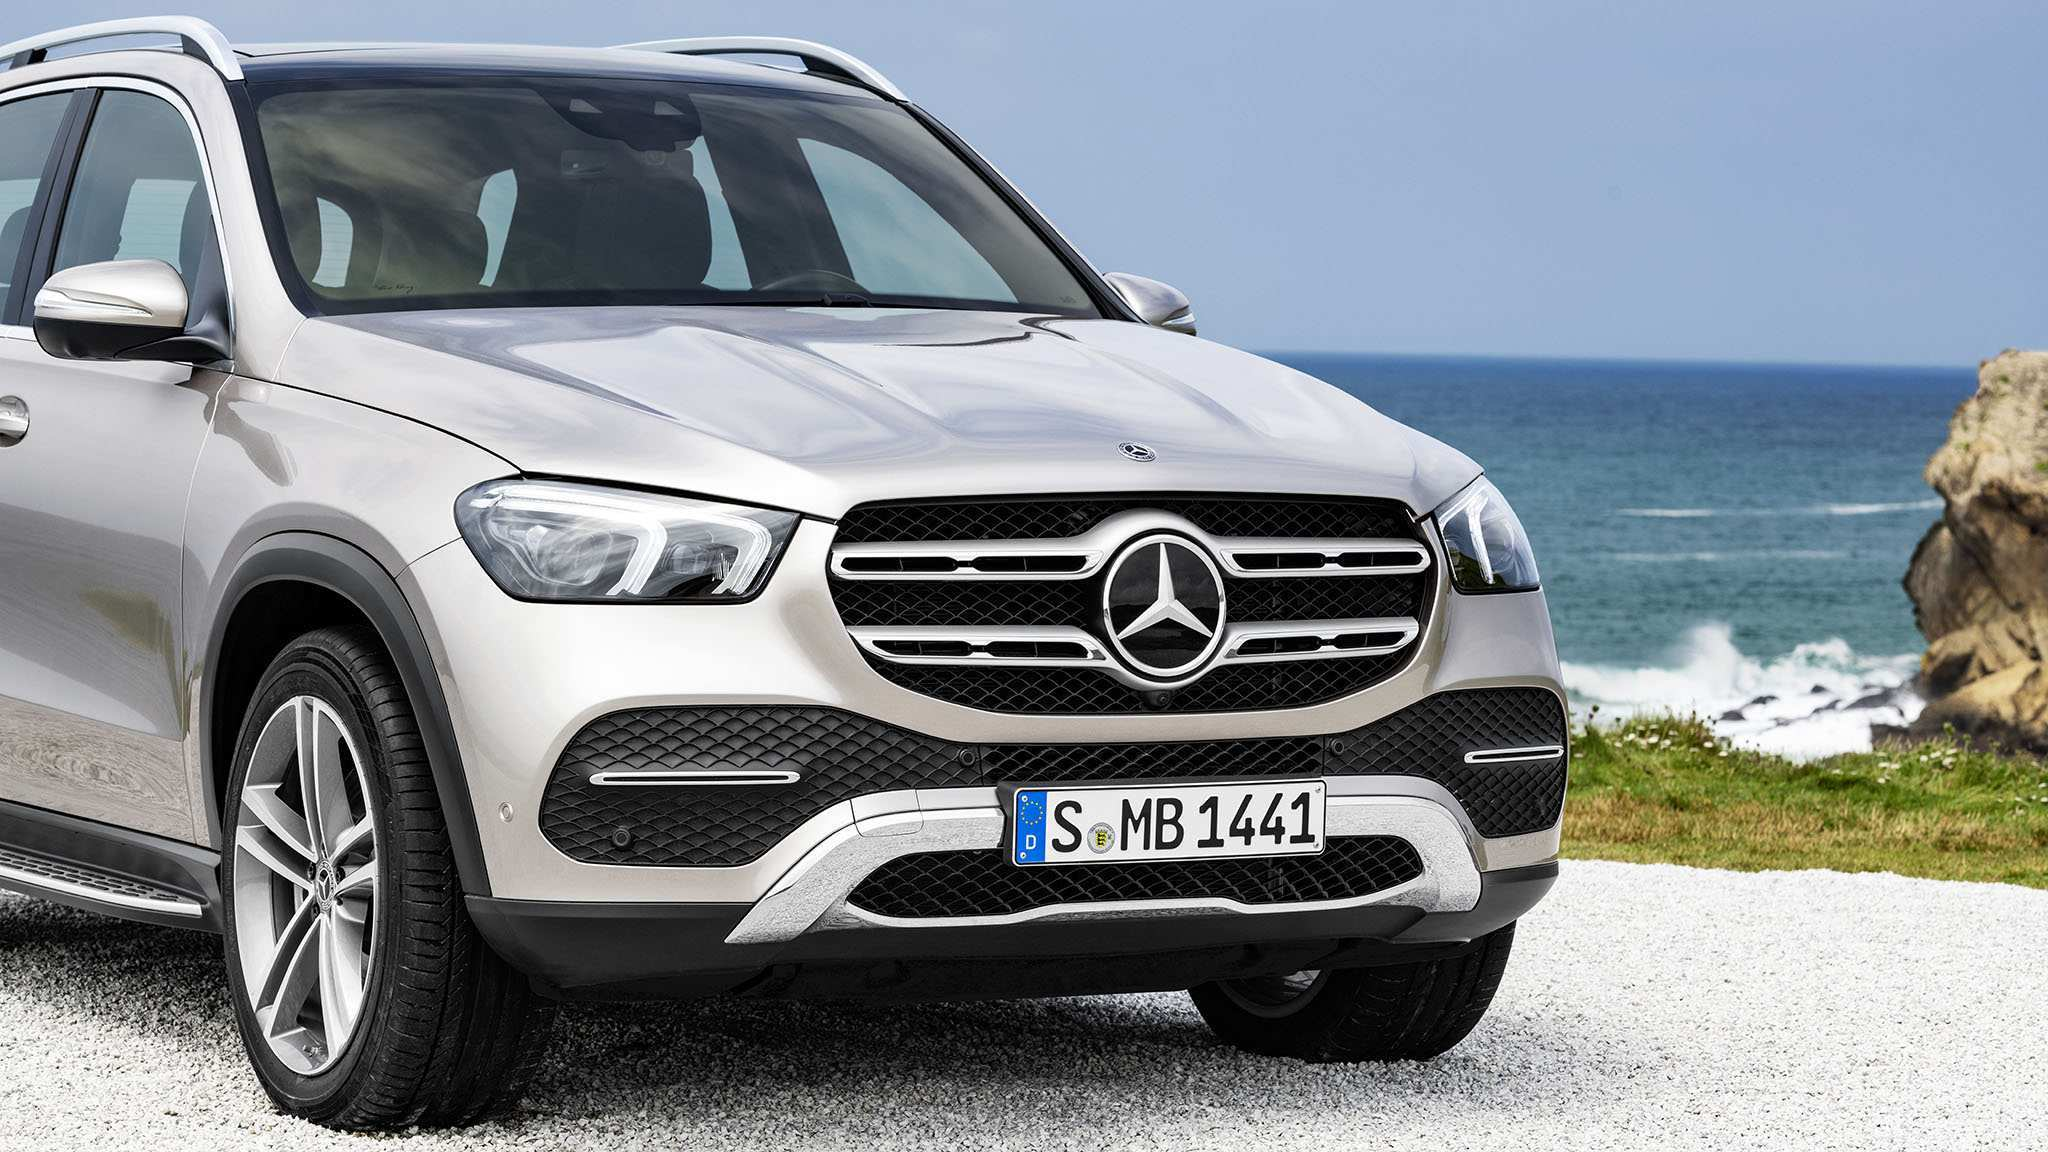 90 Gallery of 2020 Mercedes Gl Class Images with 2020 Mercedes Gl Class